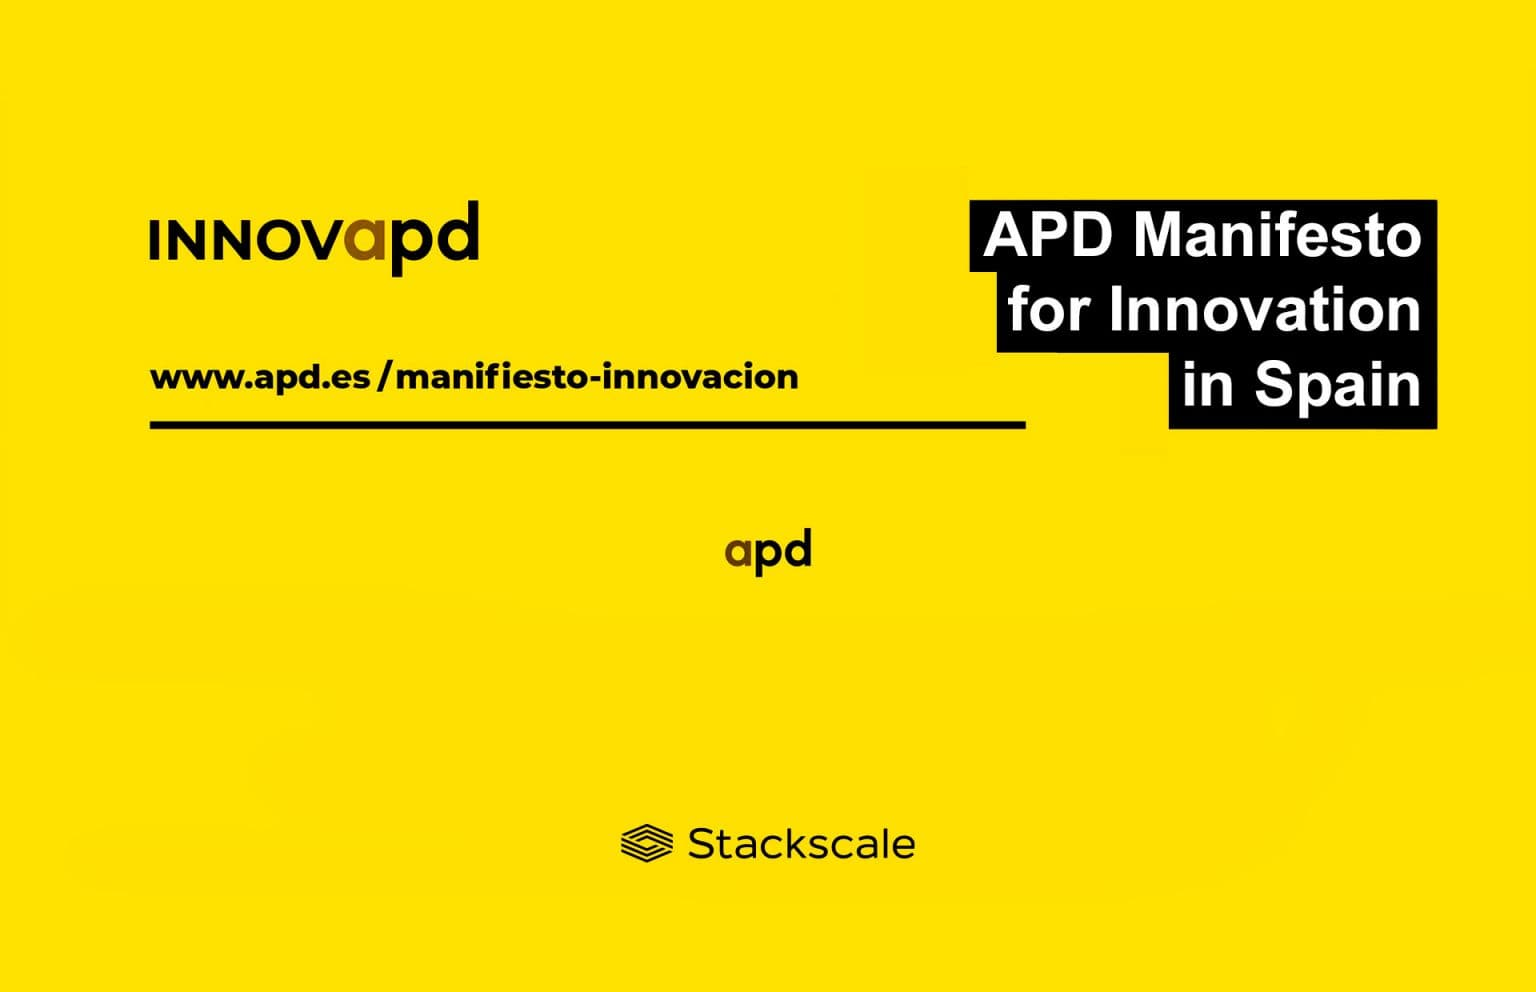 Stackscale signed the APD Manifesto for Innovation in Spain